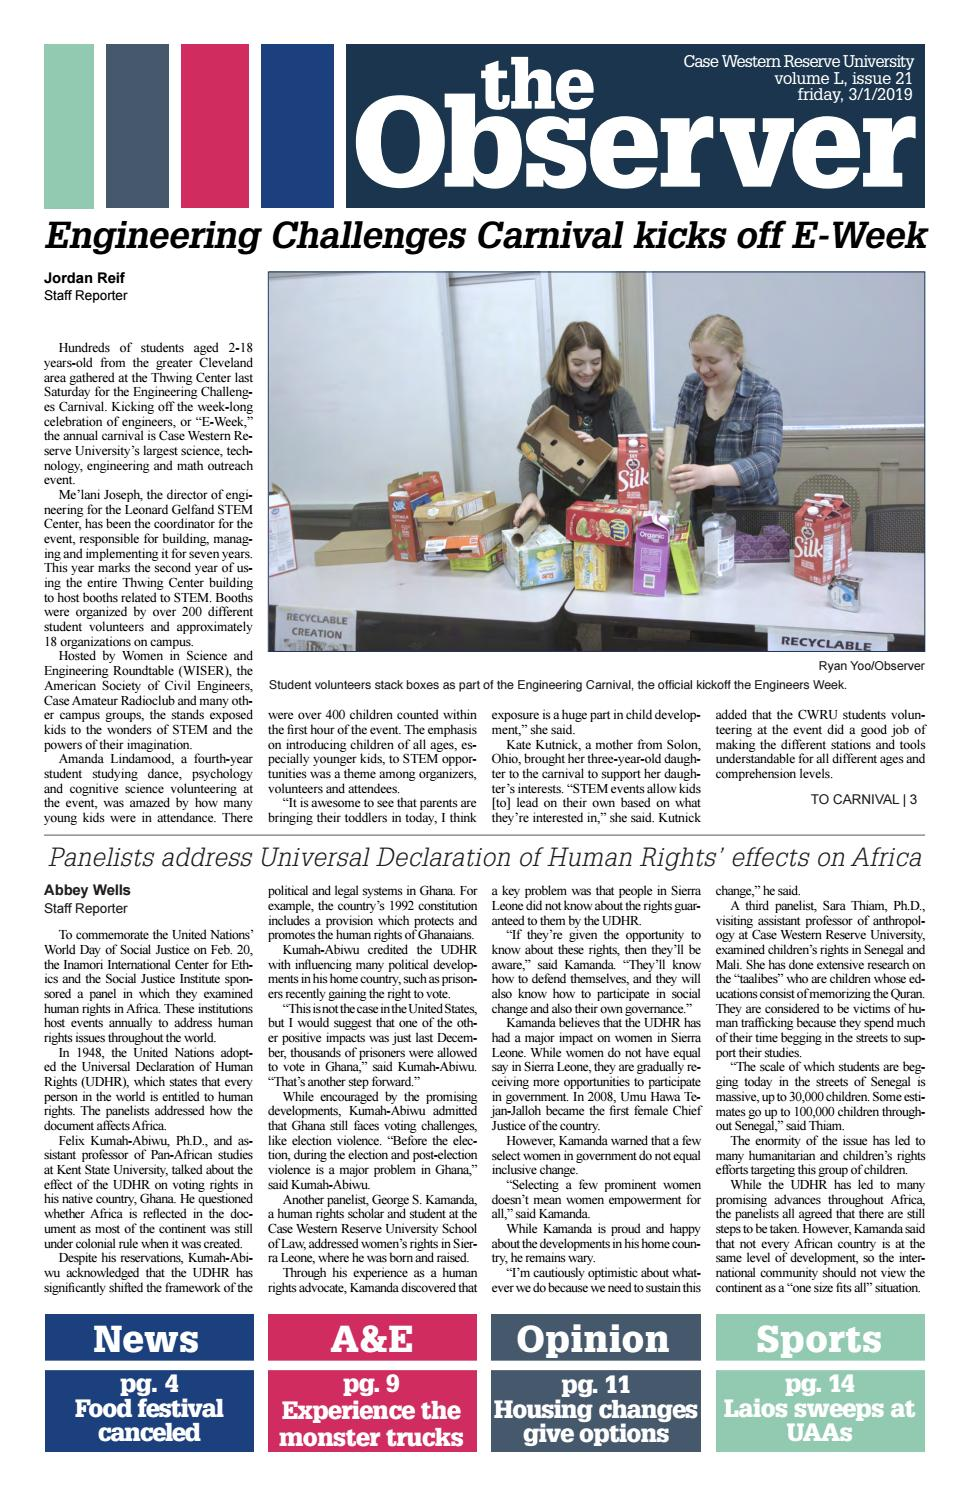 The Observer, Volume L, Issue 21, 3/1/19 by The Observer - issuu